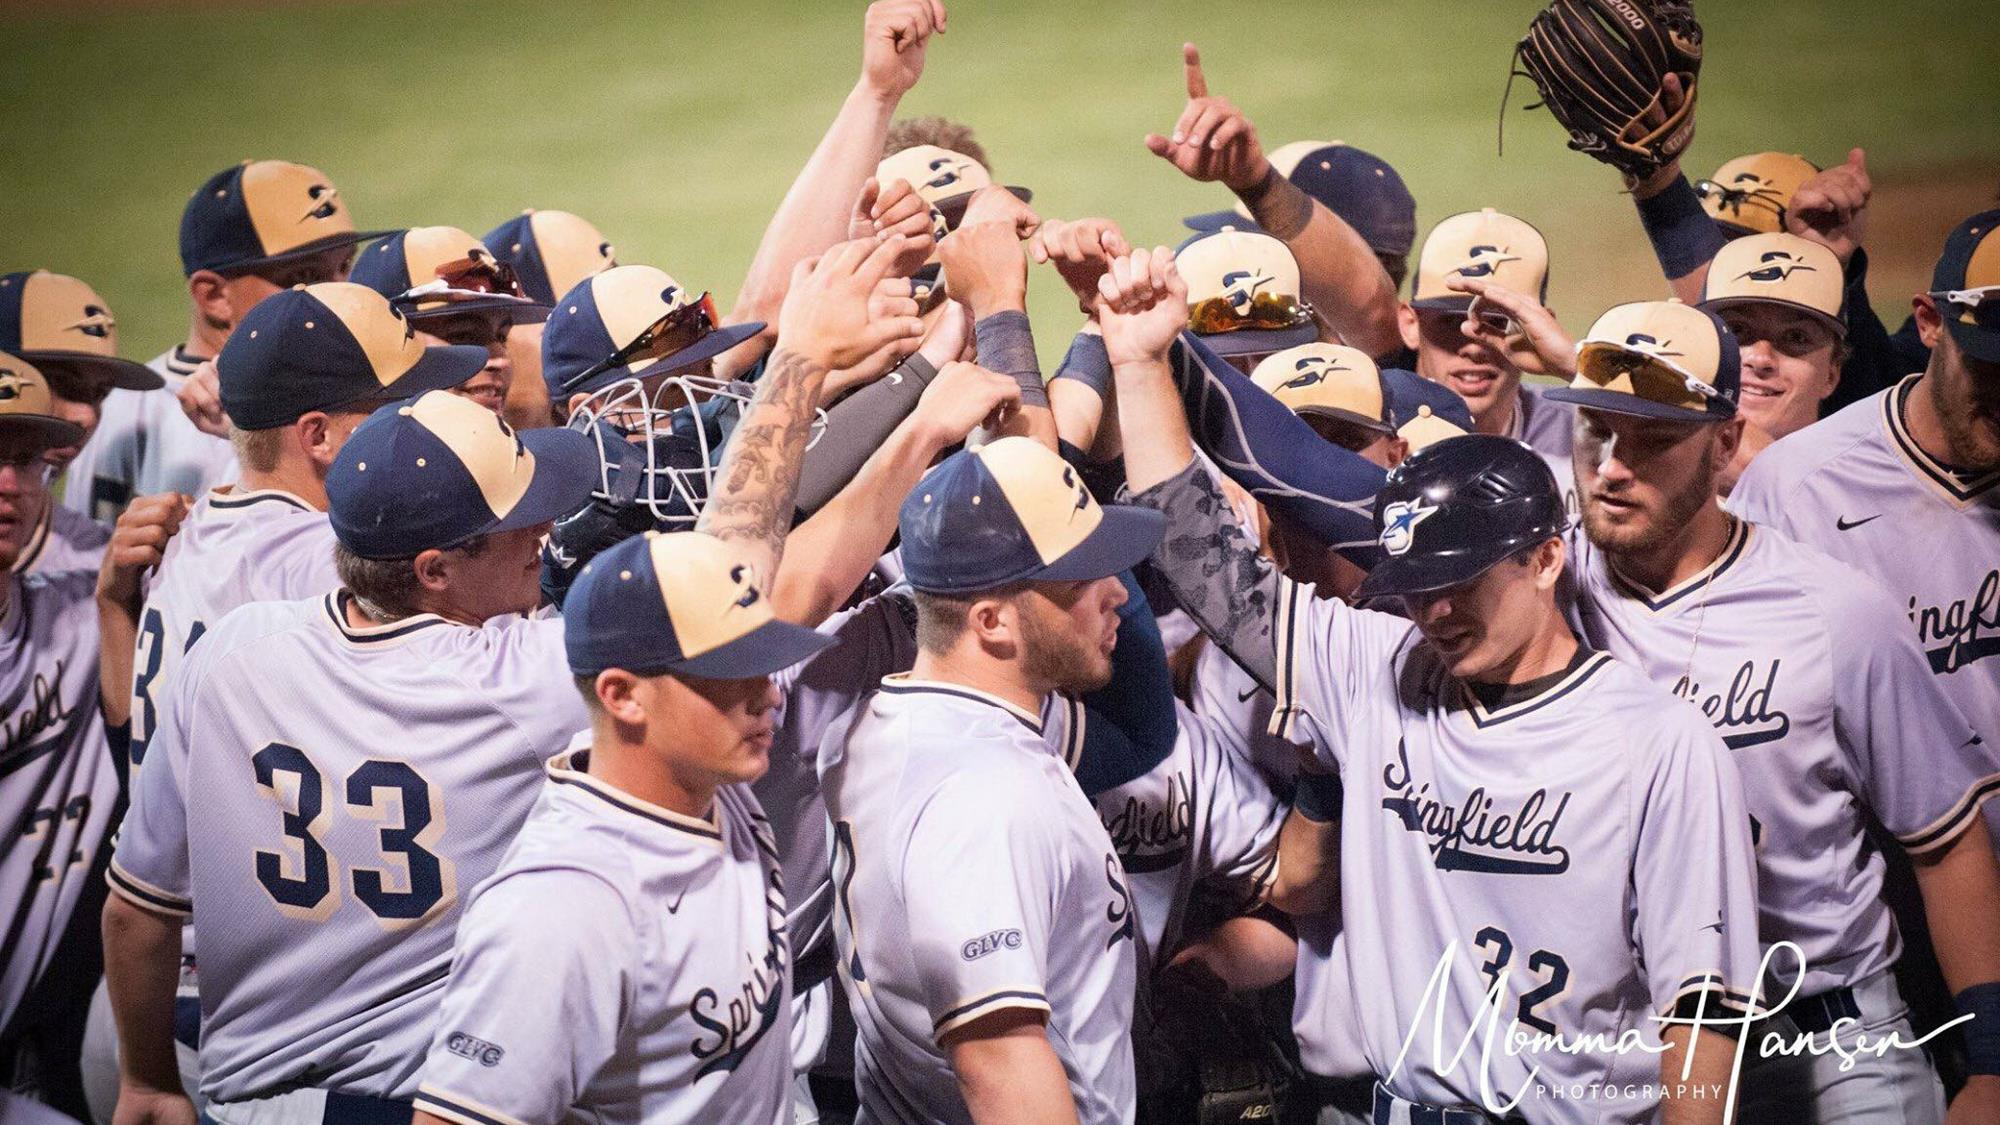 UIS Baseball Adds 10 for Spring of 2020 - UIS Athletics